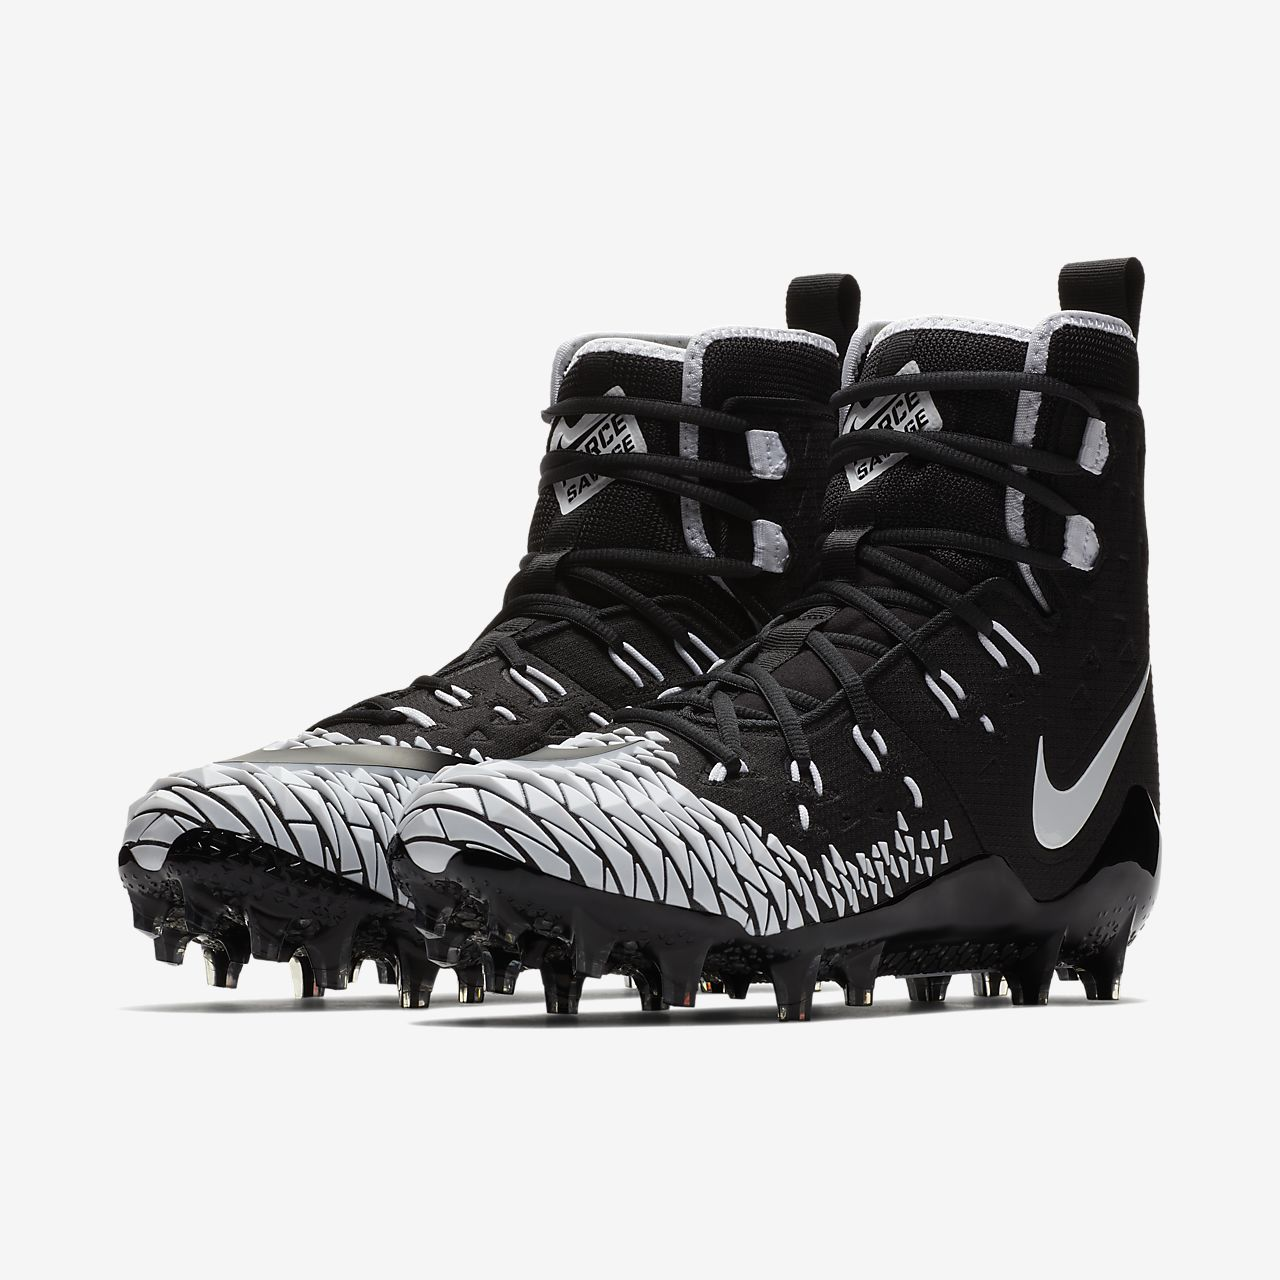 d2d08c5d751 Nike Force Savage Elite TD Men s Football Cleat. Nike.com